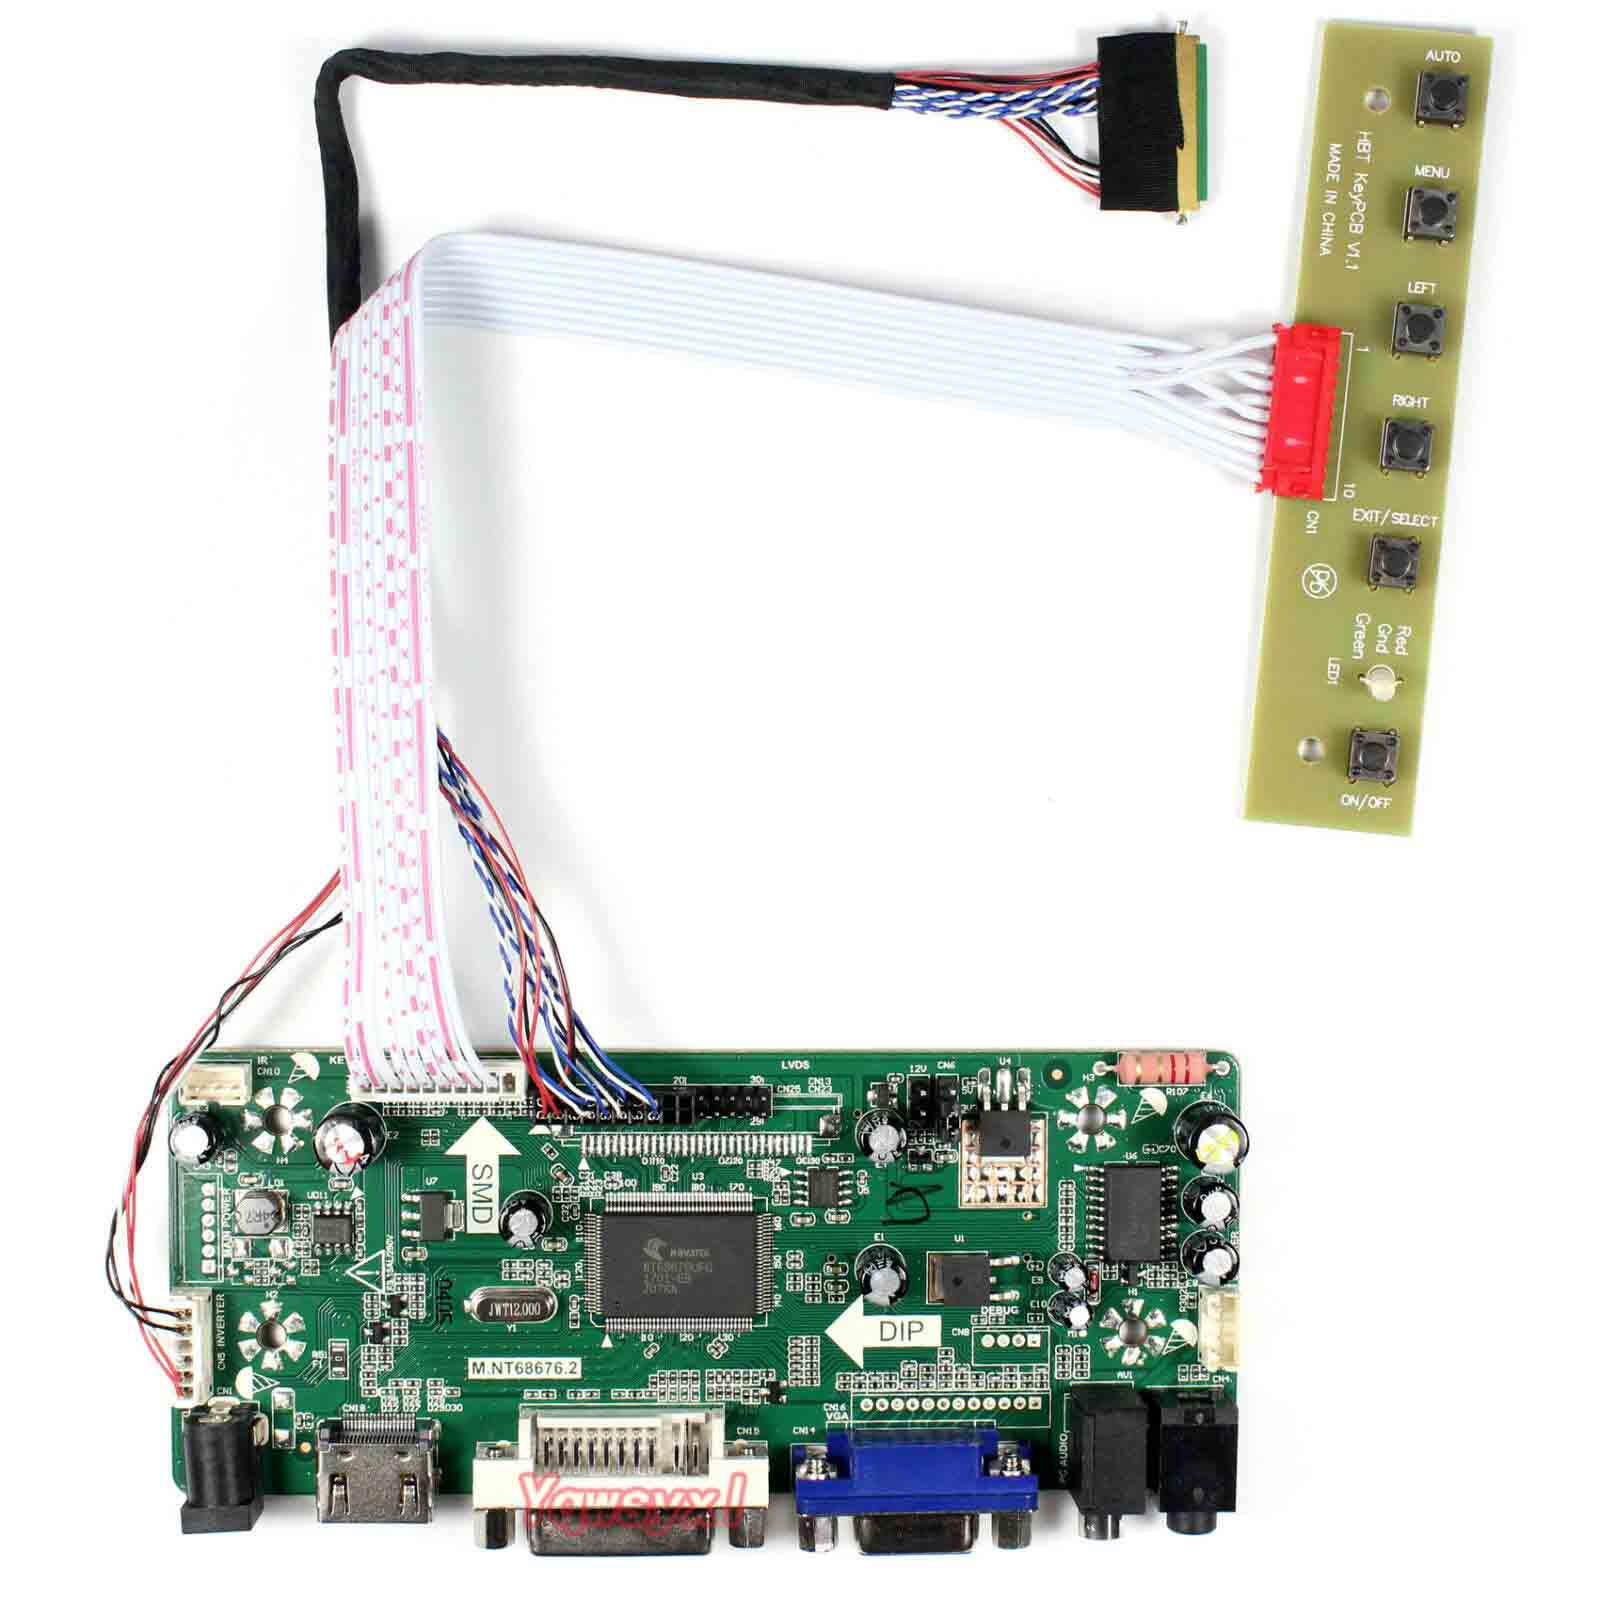 Yqwsyxl Control Board Monitor Kit For N156BGE-L61 N156BGE-LA1  N156BGE-P41 HDMI+ DVI+VGA LCD LED  Screen Controller Board Driver